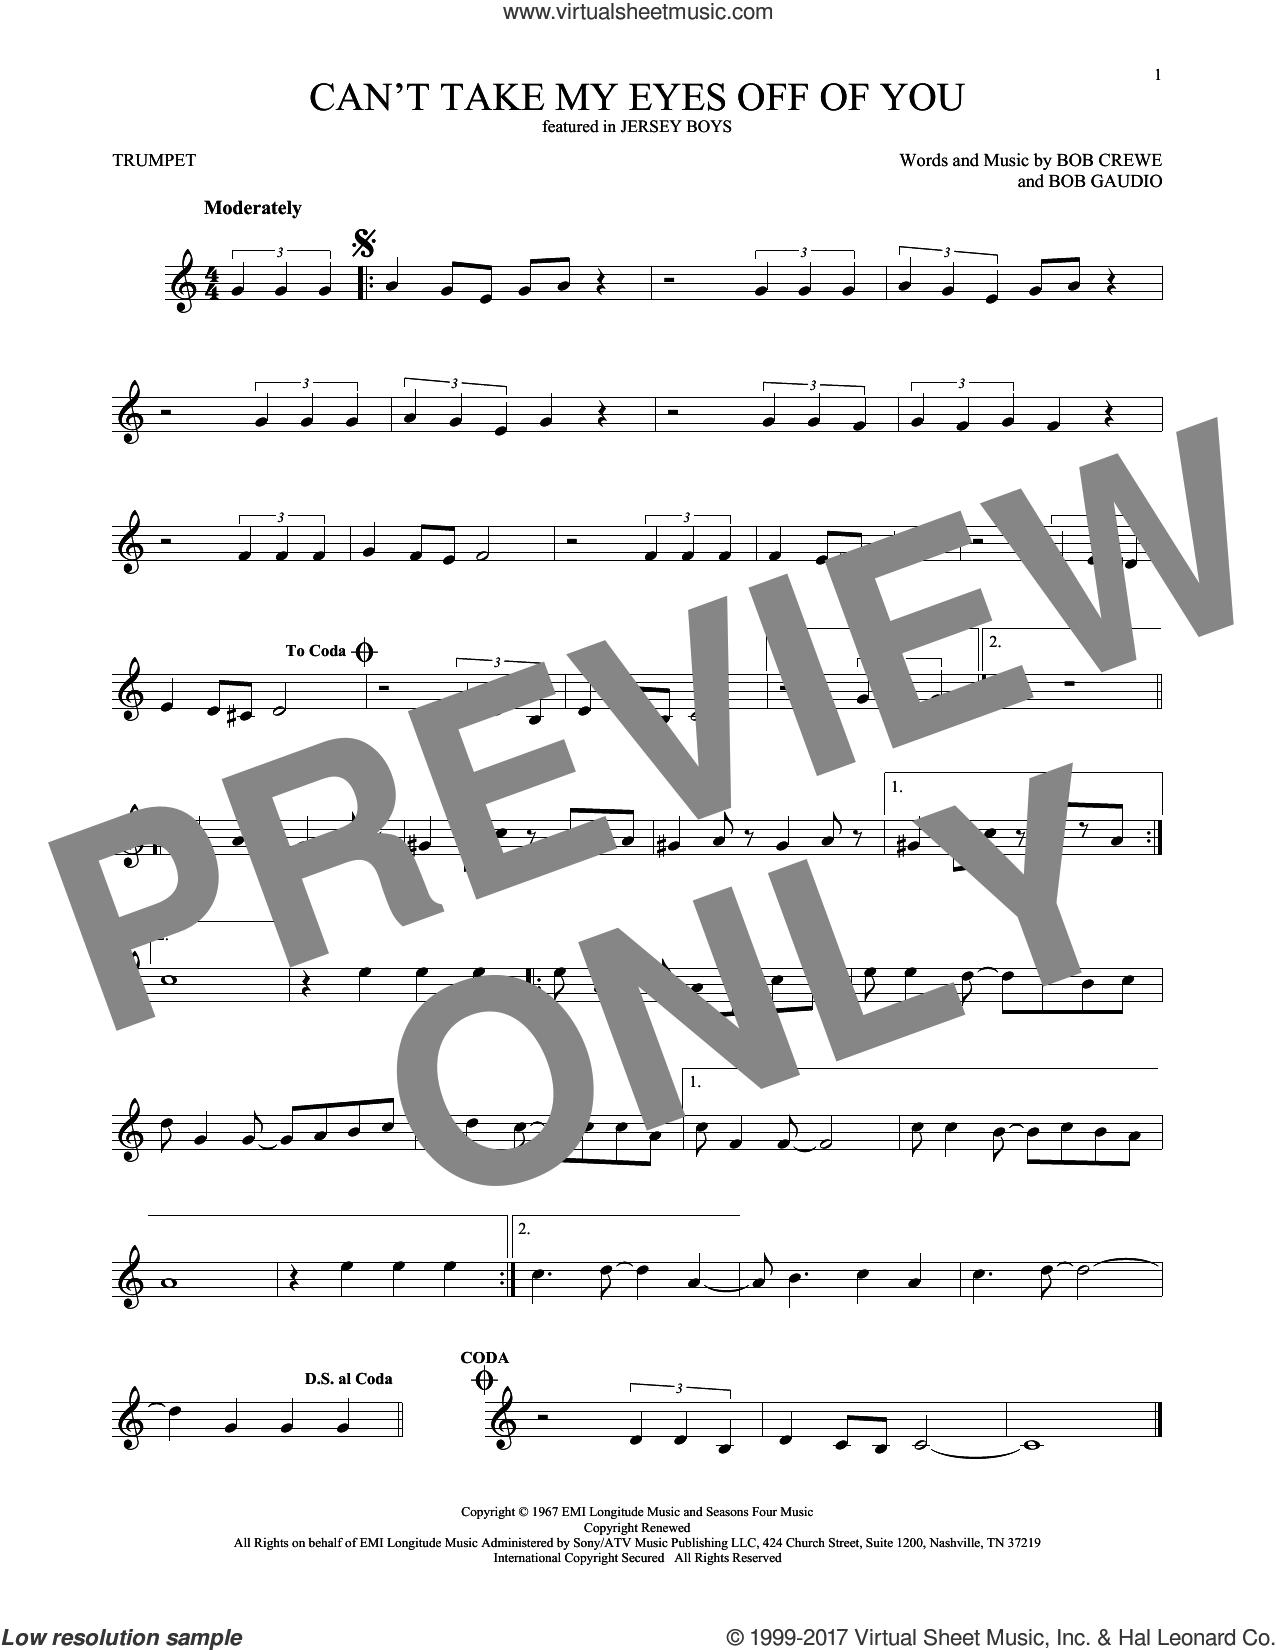 Can't Take My Eyes Off Of You sheet music for trumpet solo by The Four Seasons, Frankie Valli, Bob Crewe and Bob Gaudio, intermediate skill level